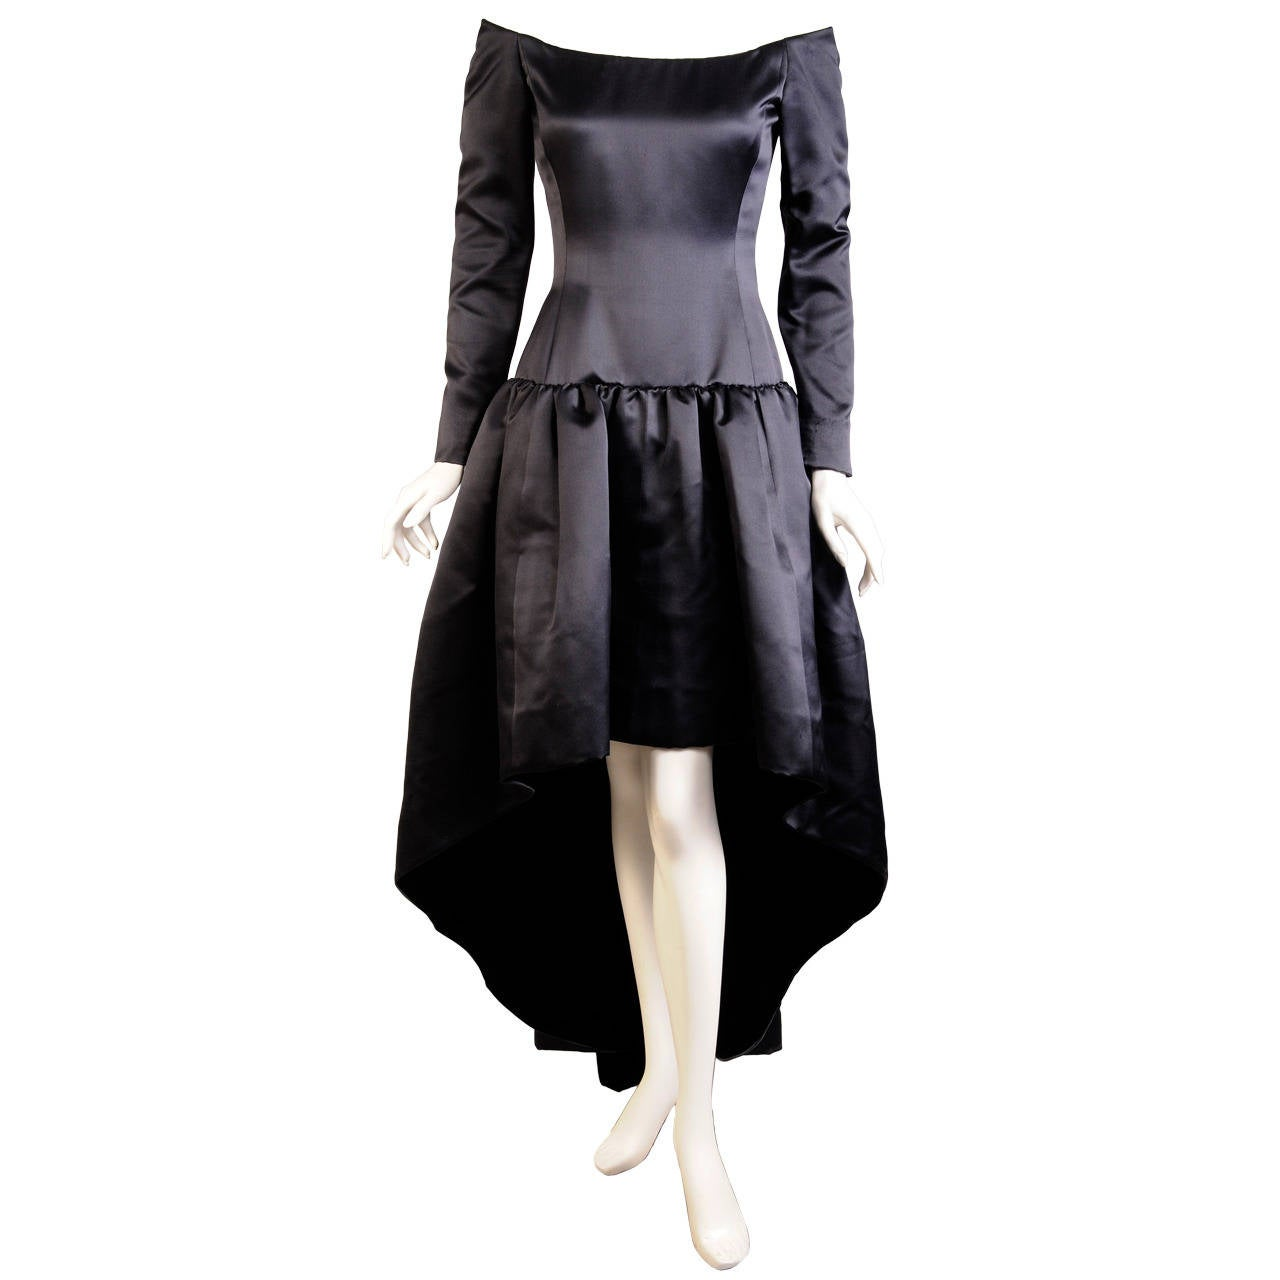 Givenchy haute couture black satin evening dress at 1stdibs for Haute couture dress price